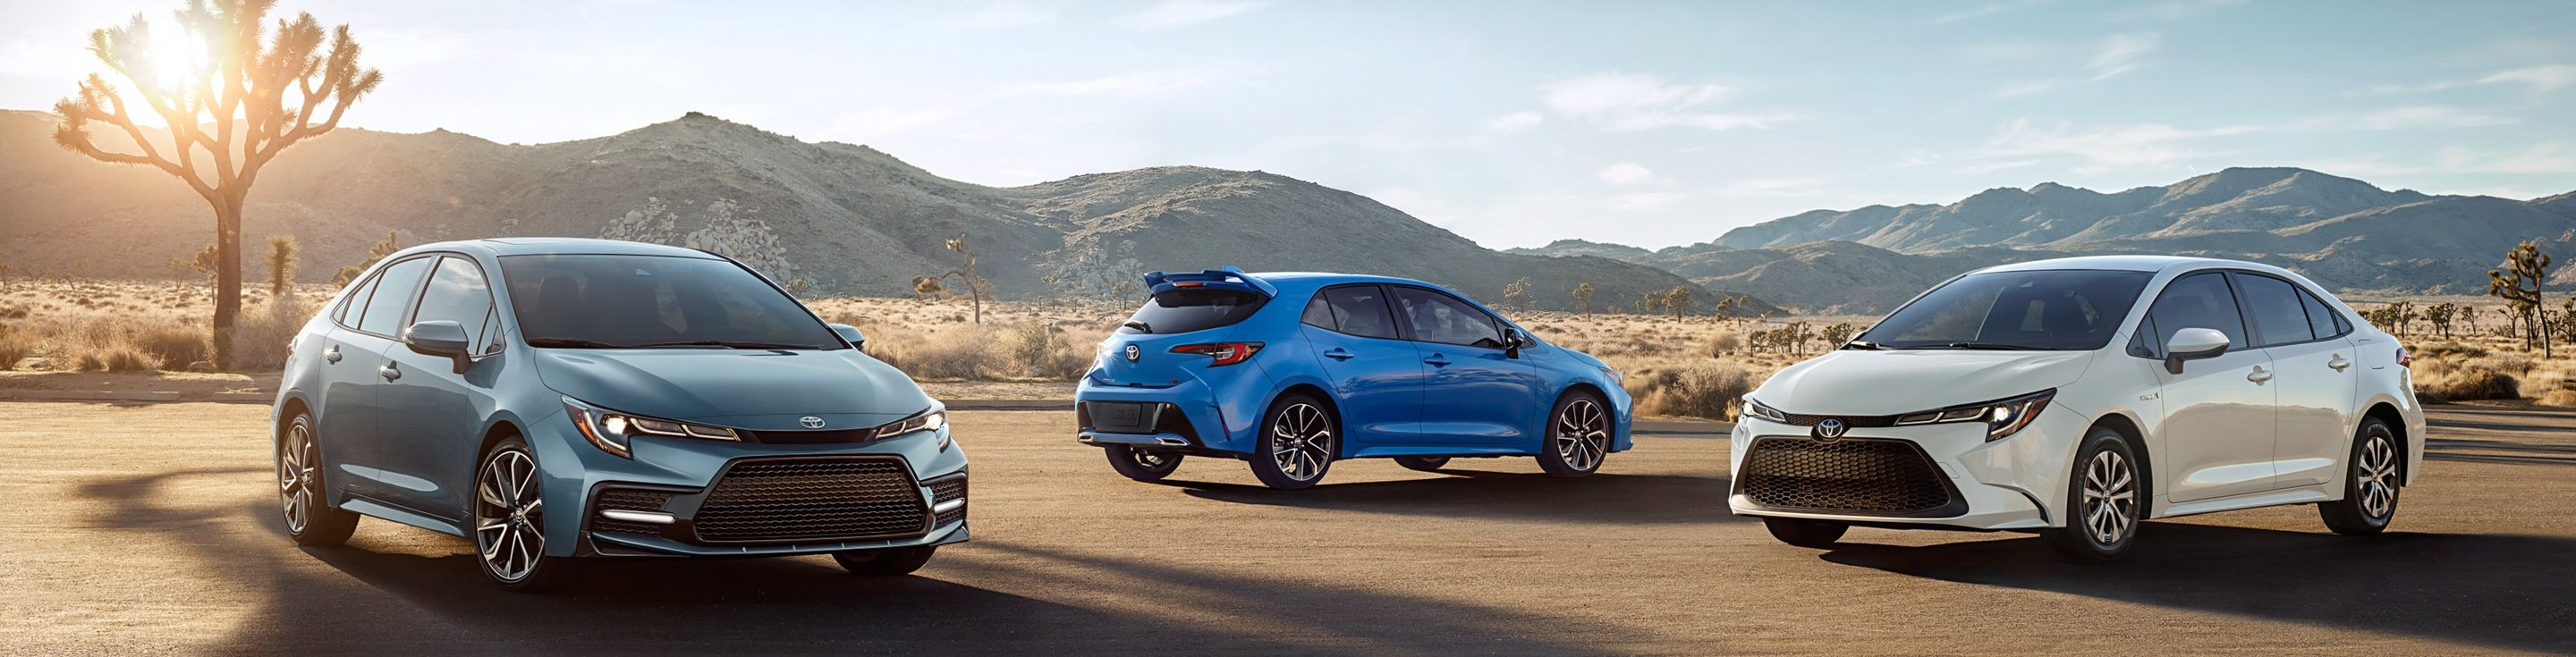 2020 Toyota Corolla Hybrid for Sale near Overland Park, KS, 66213